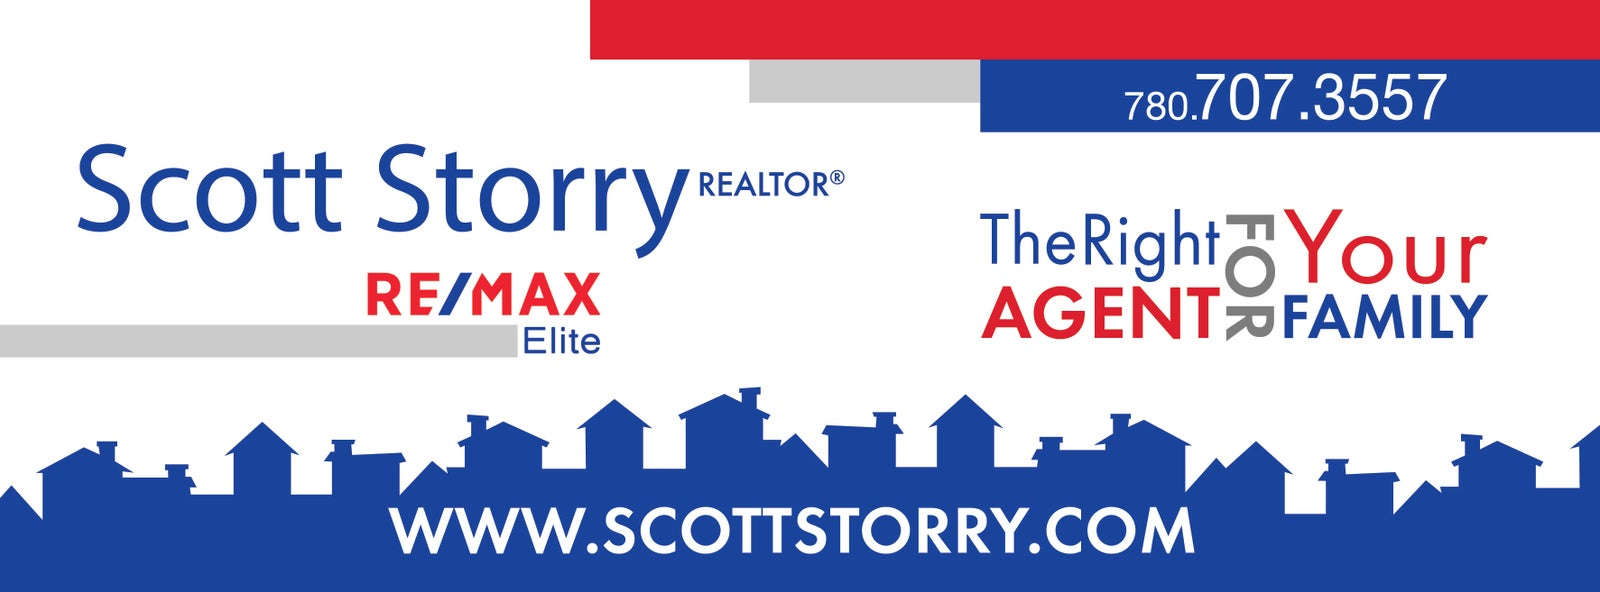 Scott Storry Royal Lepage Premier